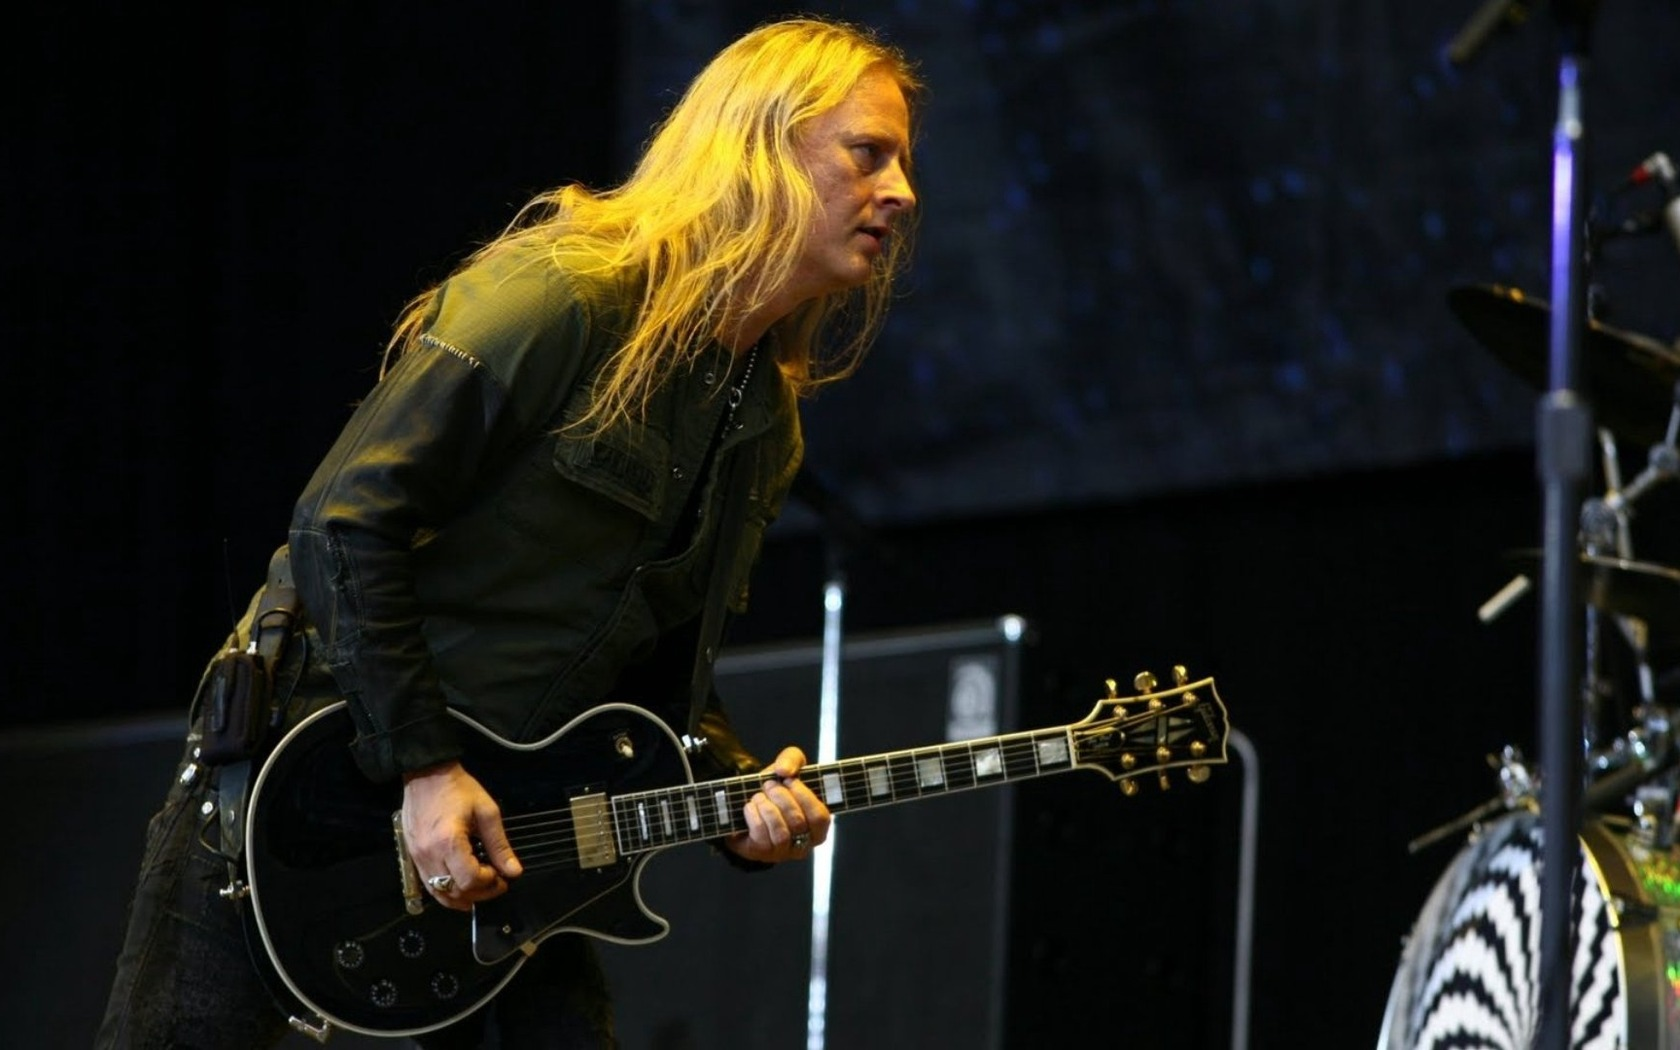 Download wallpaper 1680x1050 jerry cantrell hair guitar play 1680x1050